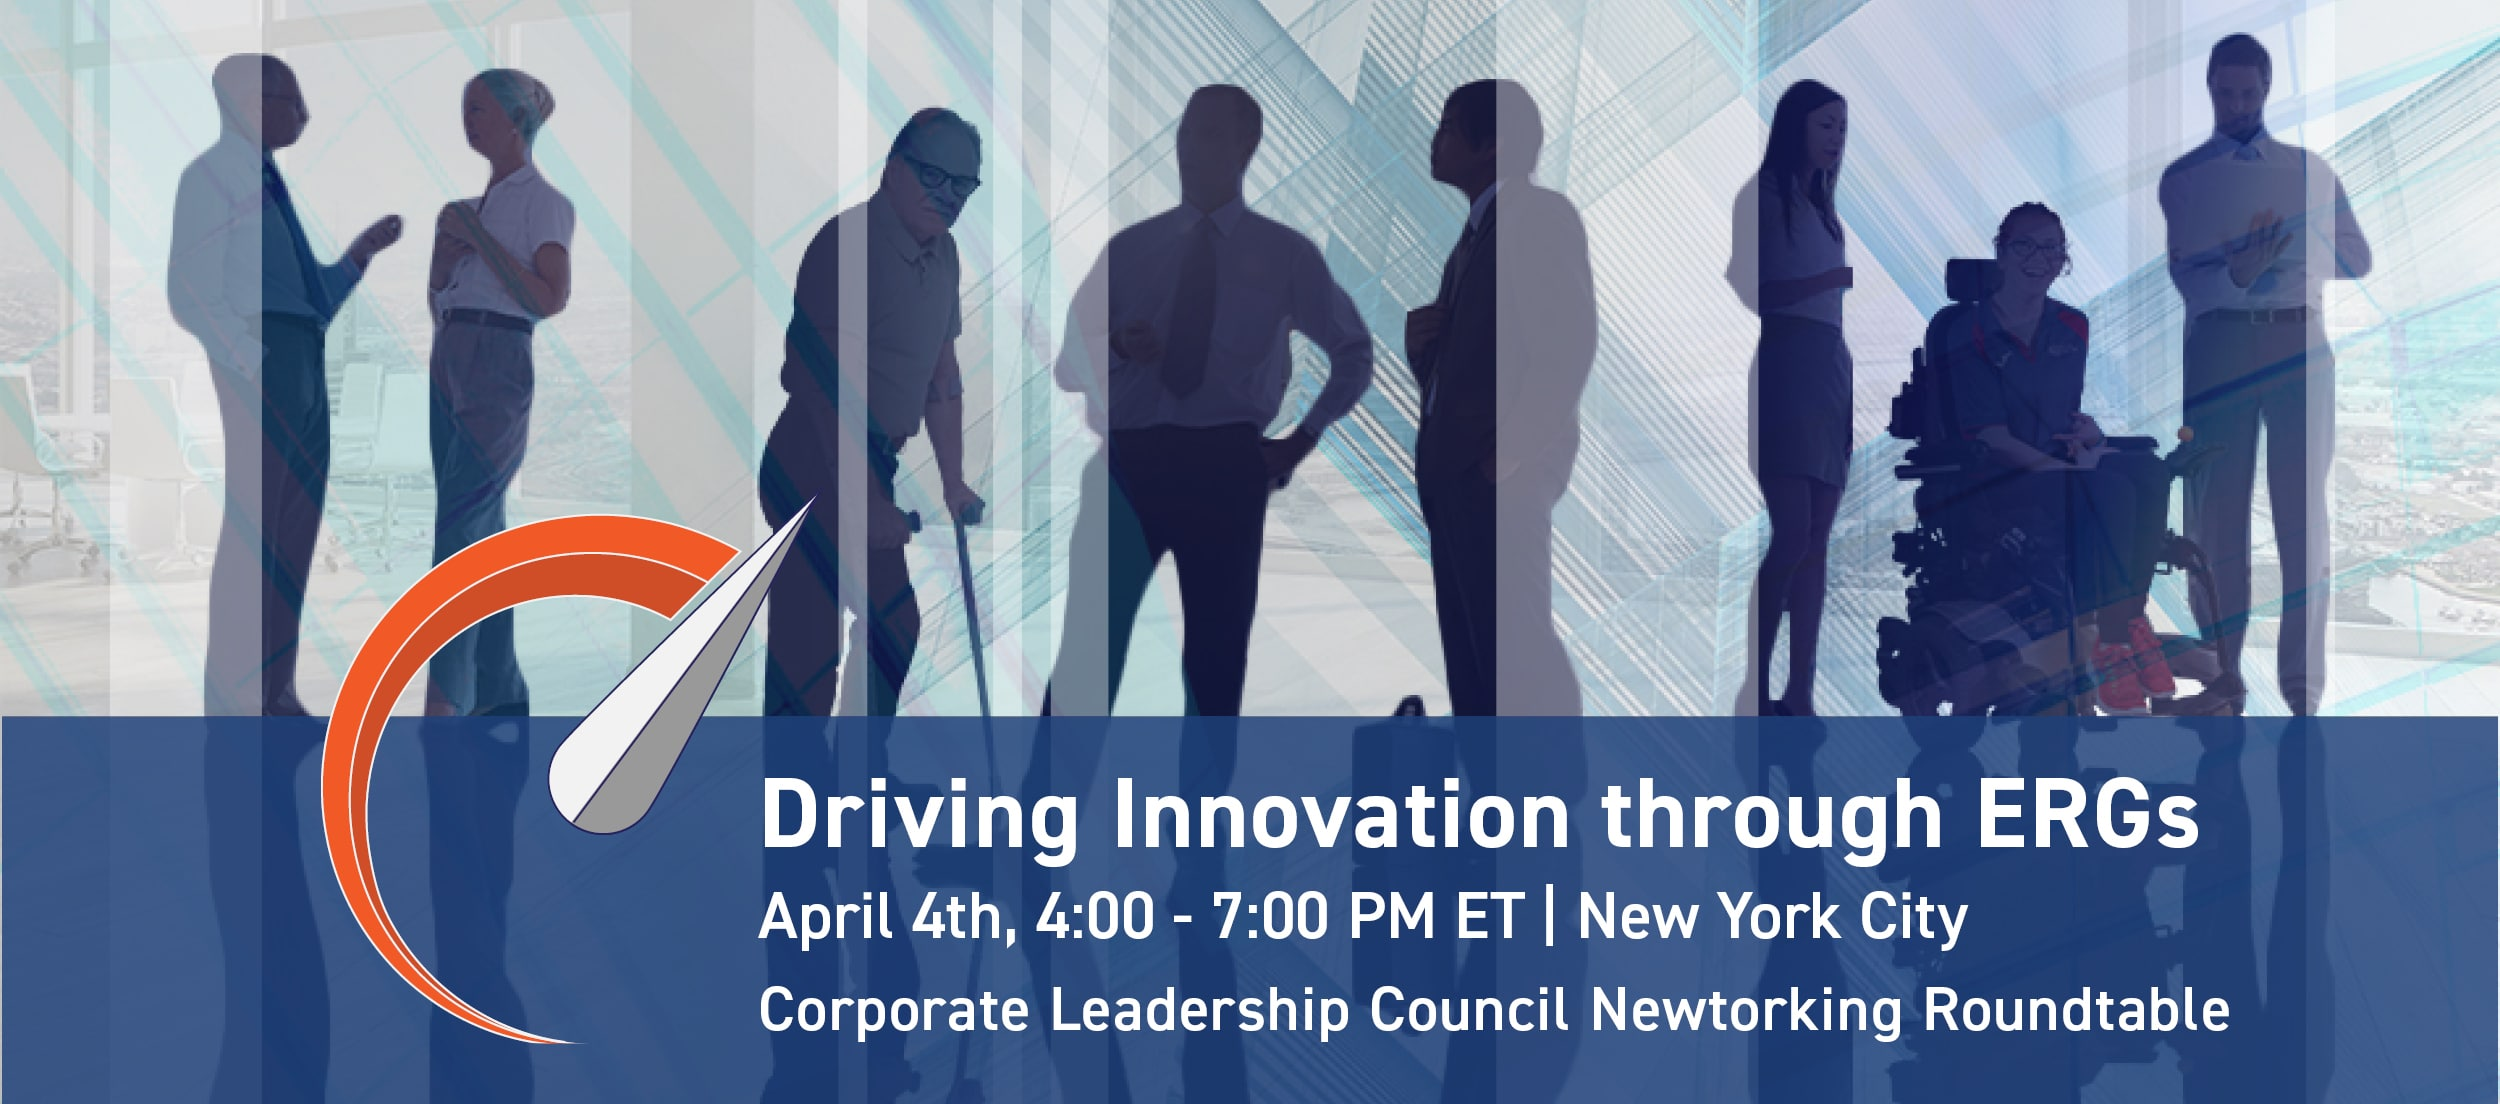 DRIVING INNOVATION THROUGH EMPLOYEE RESOURCE GROUPS April 4th, 4:00 - 7:00 PM ET | New York City; Corporate Leadership Council Networking Roundtable.